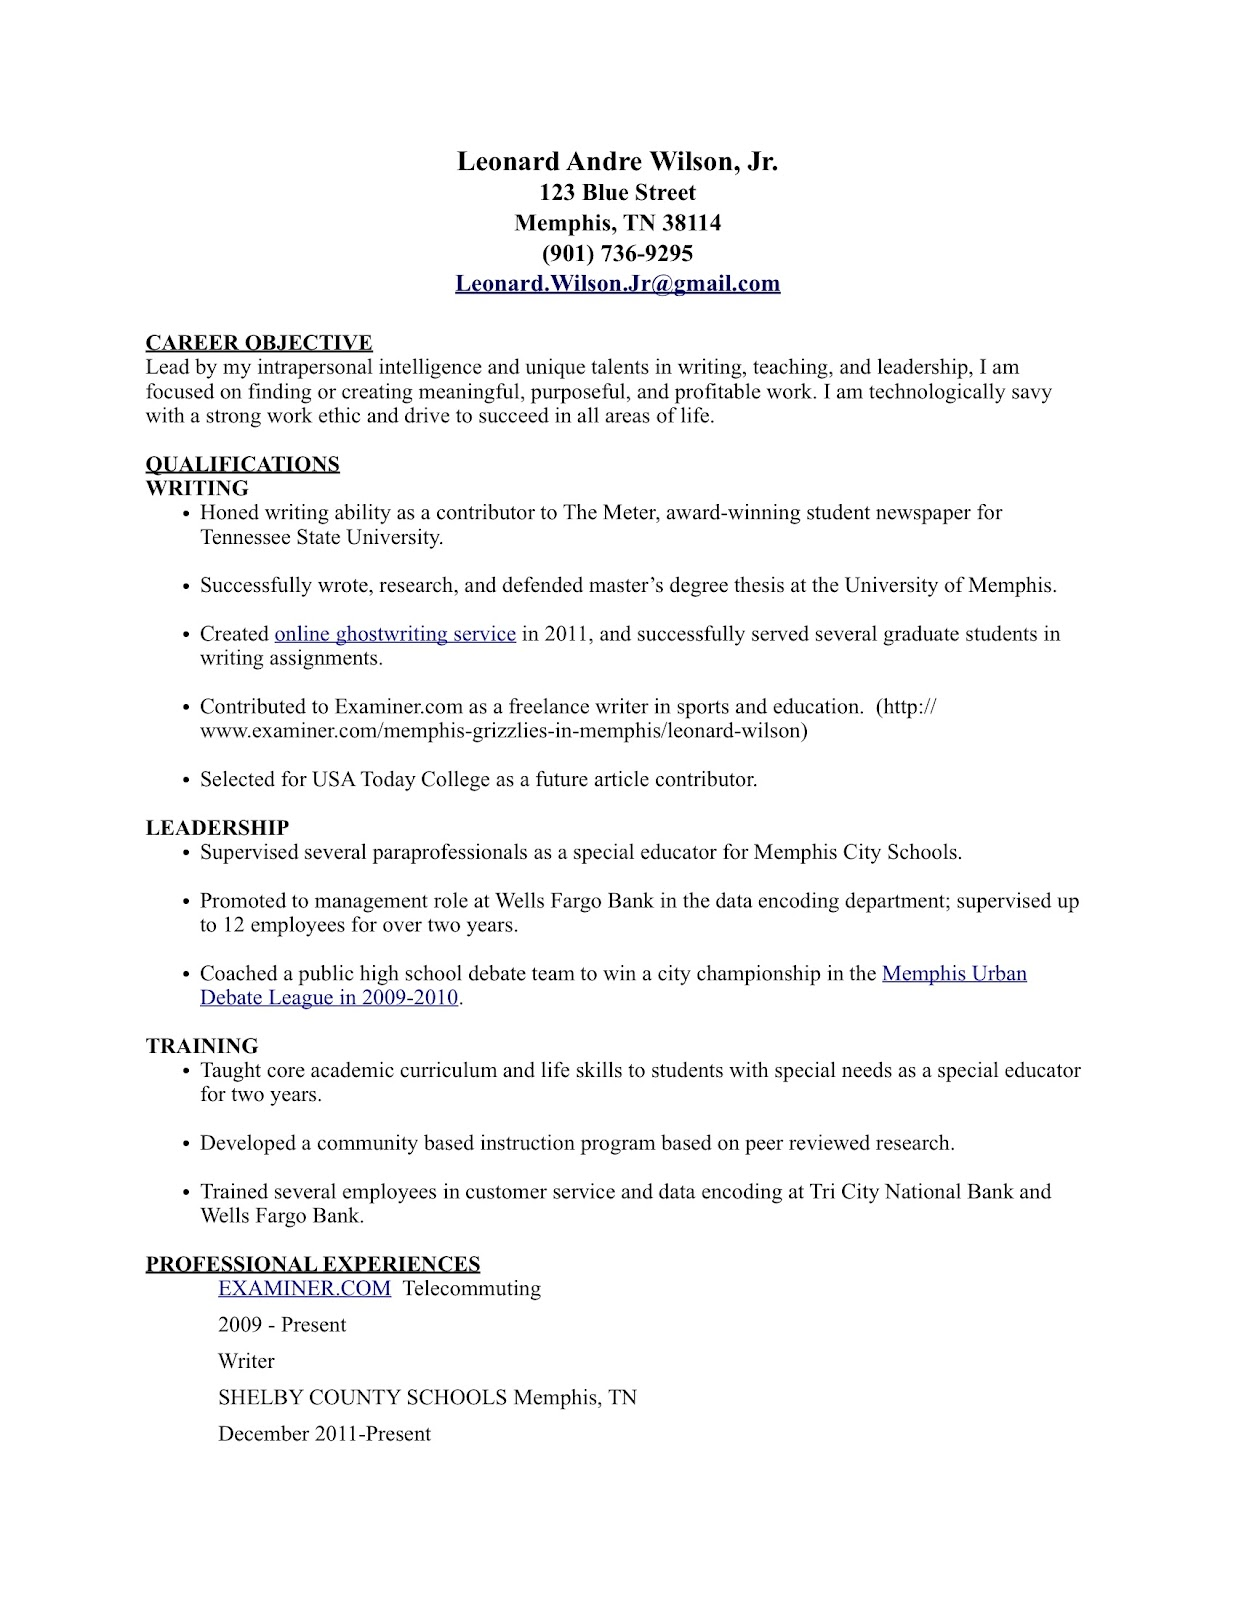 Personal Interests On A Resume Following My Passion To Success Career Tools Sample